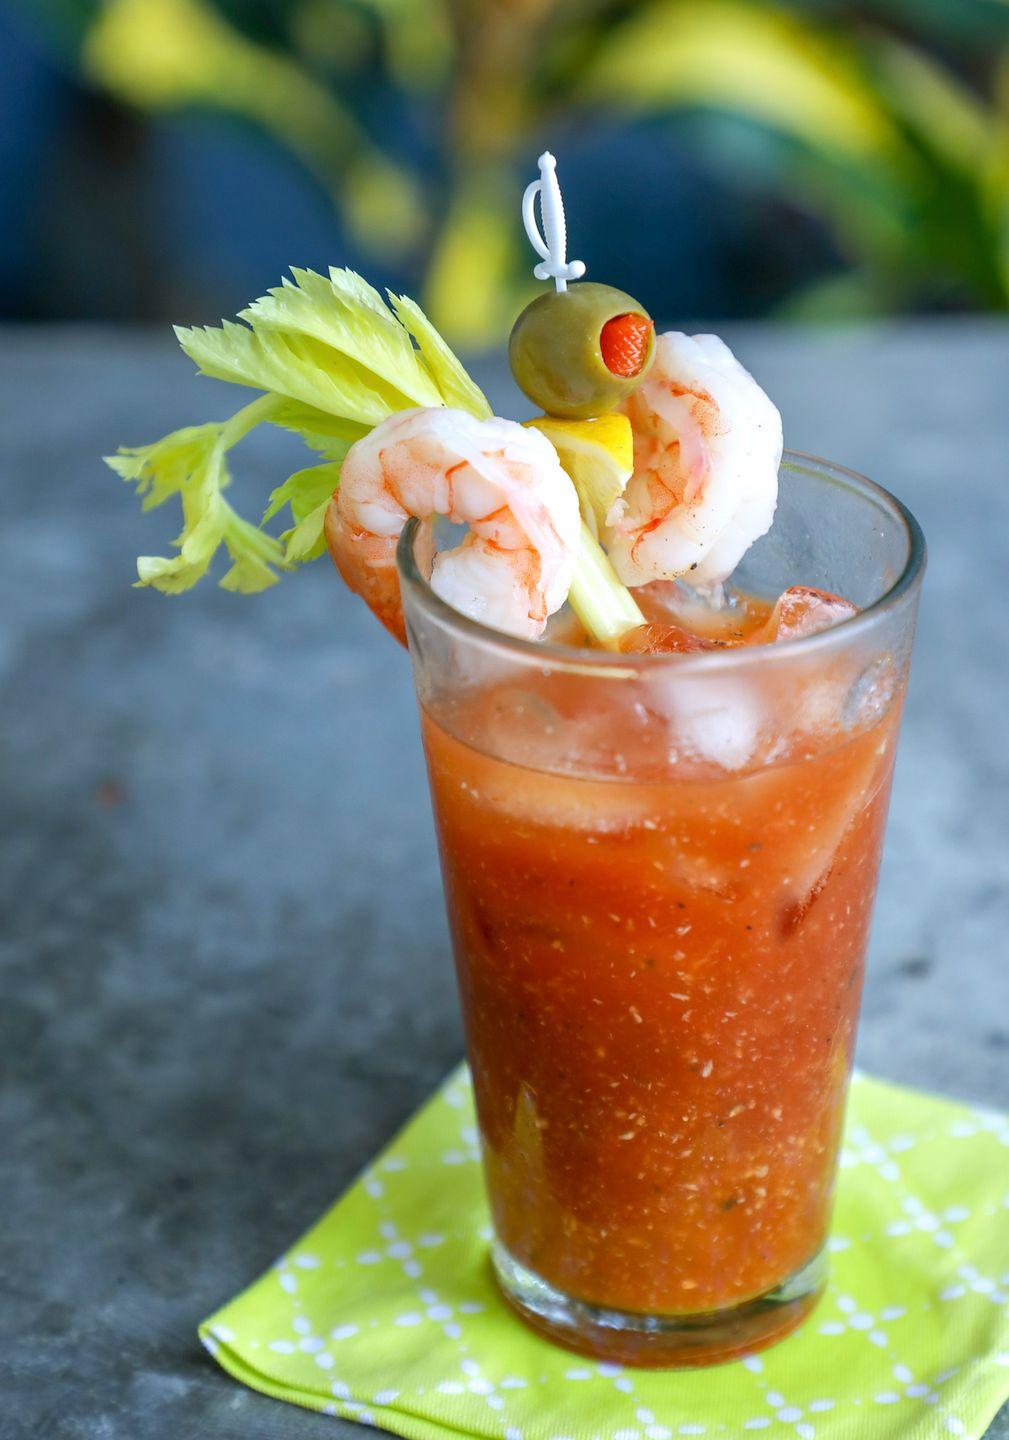 "<p>You might not be convinced by the myth that a Bloody Mary can cure a hangover — but they are undoubtedly delicious. This low-carb Bloody Mary cocktail from <a href=""https://www.ibreatheimhungry.com/keto-bloody-mary-cocktail-low-carb/"" rel=""nofollow noopener"" target=""_blank"" data-ylk=""slk:I Breathe I'm Hungry"" class=""link rapid-noclick-resp"">I Breathe I'm Hungry</a> has the perfect combination of spice and tang, and it's sure to wake you up come morning. </p>"